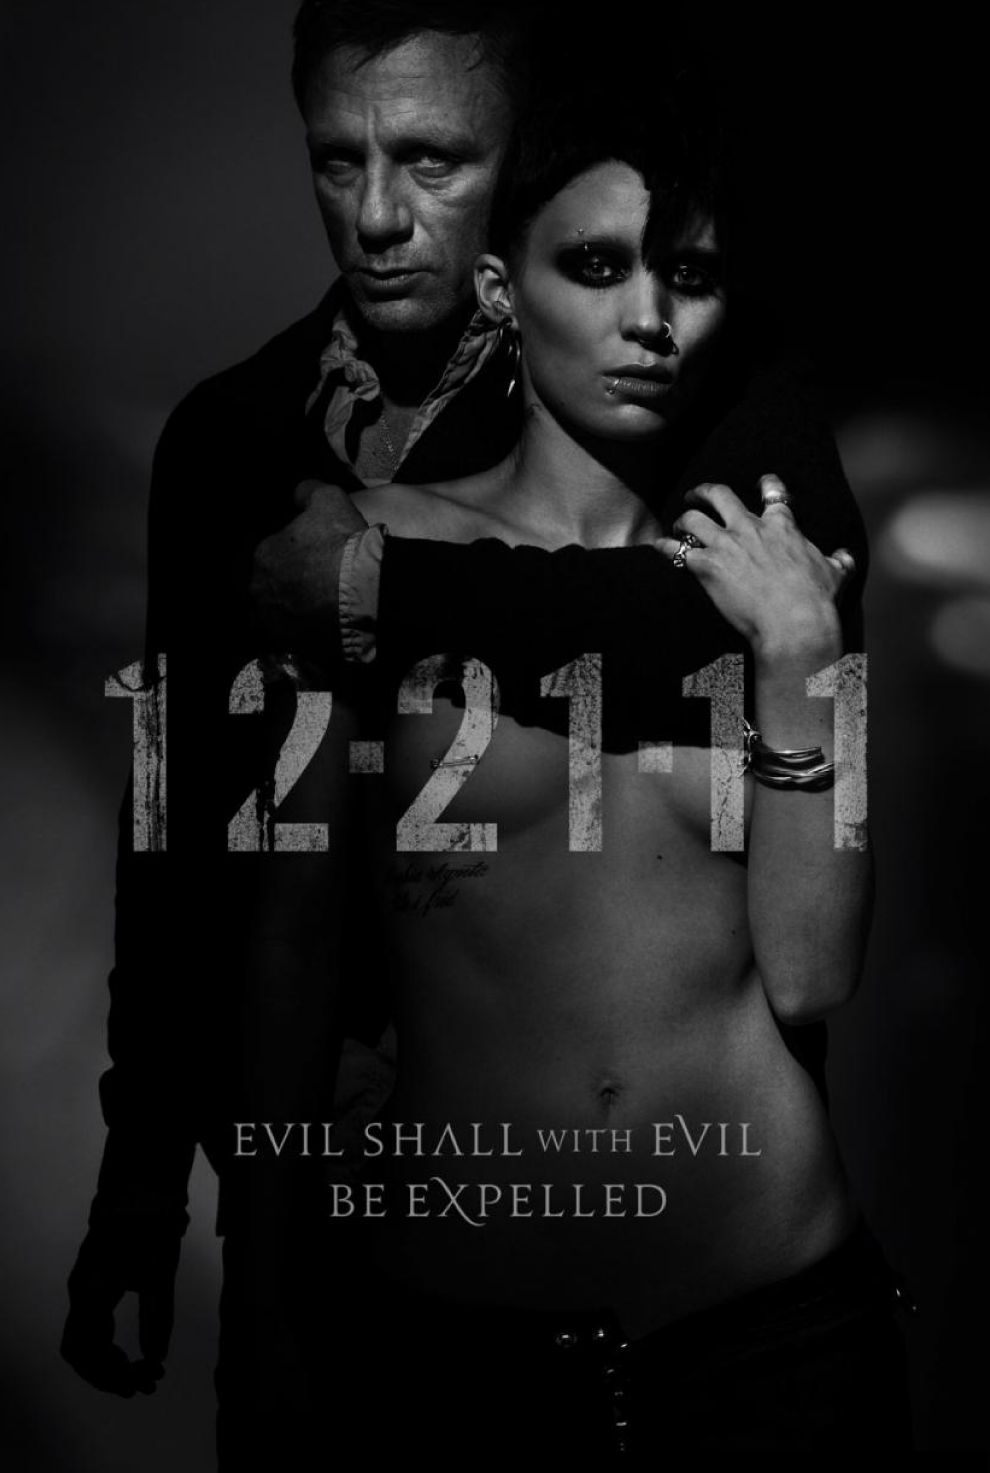 the-girl-with-the-dragon-tattoo-teaser-poster-2011-rooney-mara-pierced ... The Girl With The Dragon Tattoo Poster